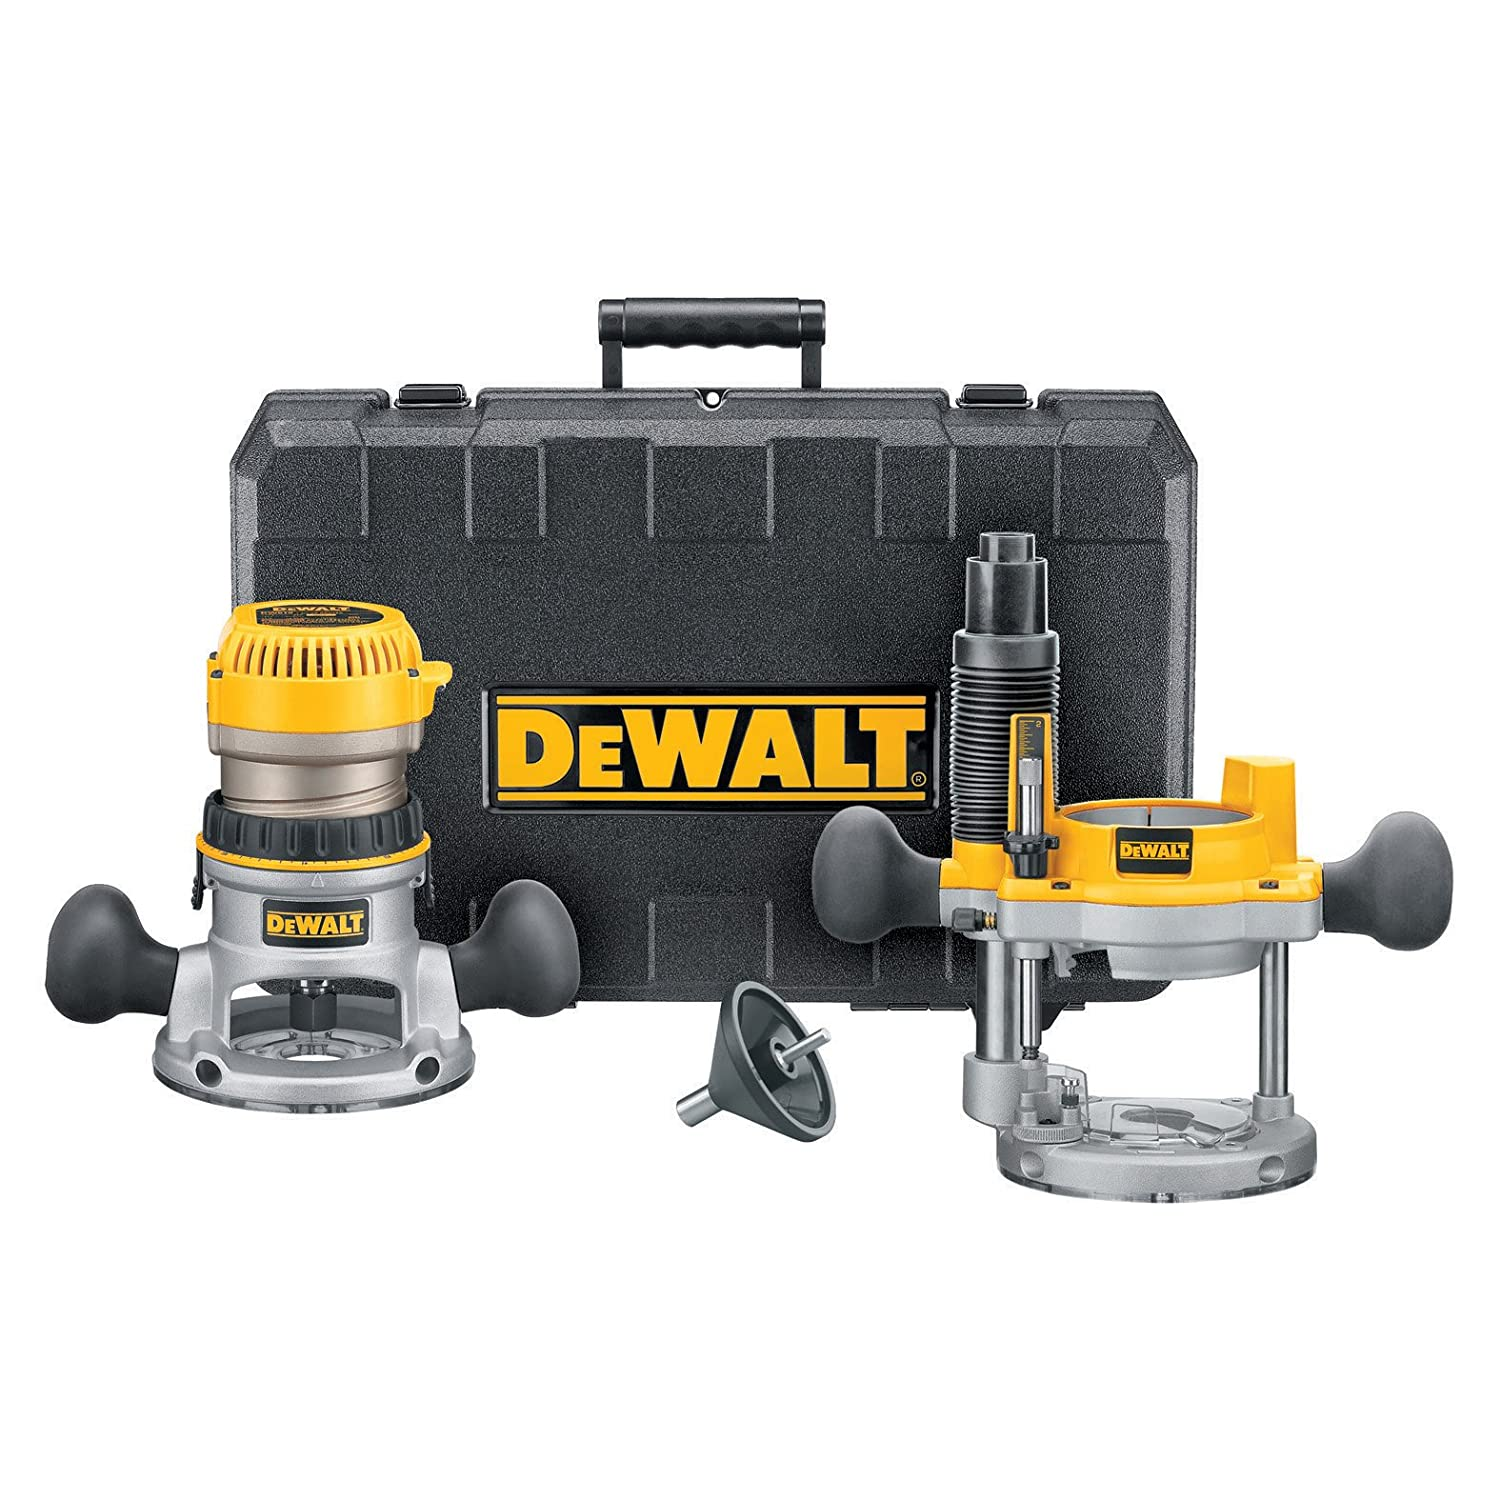 DEWALT DW616PK 1-3 4 Horsepower Fixed Base Plunge Router Combo Kit